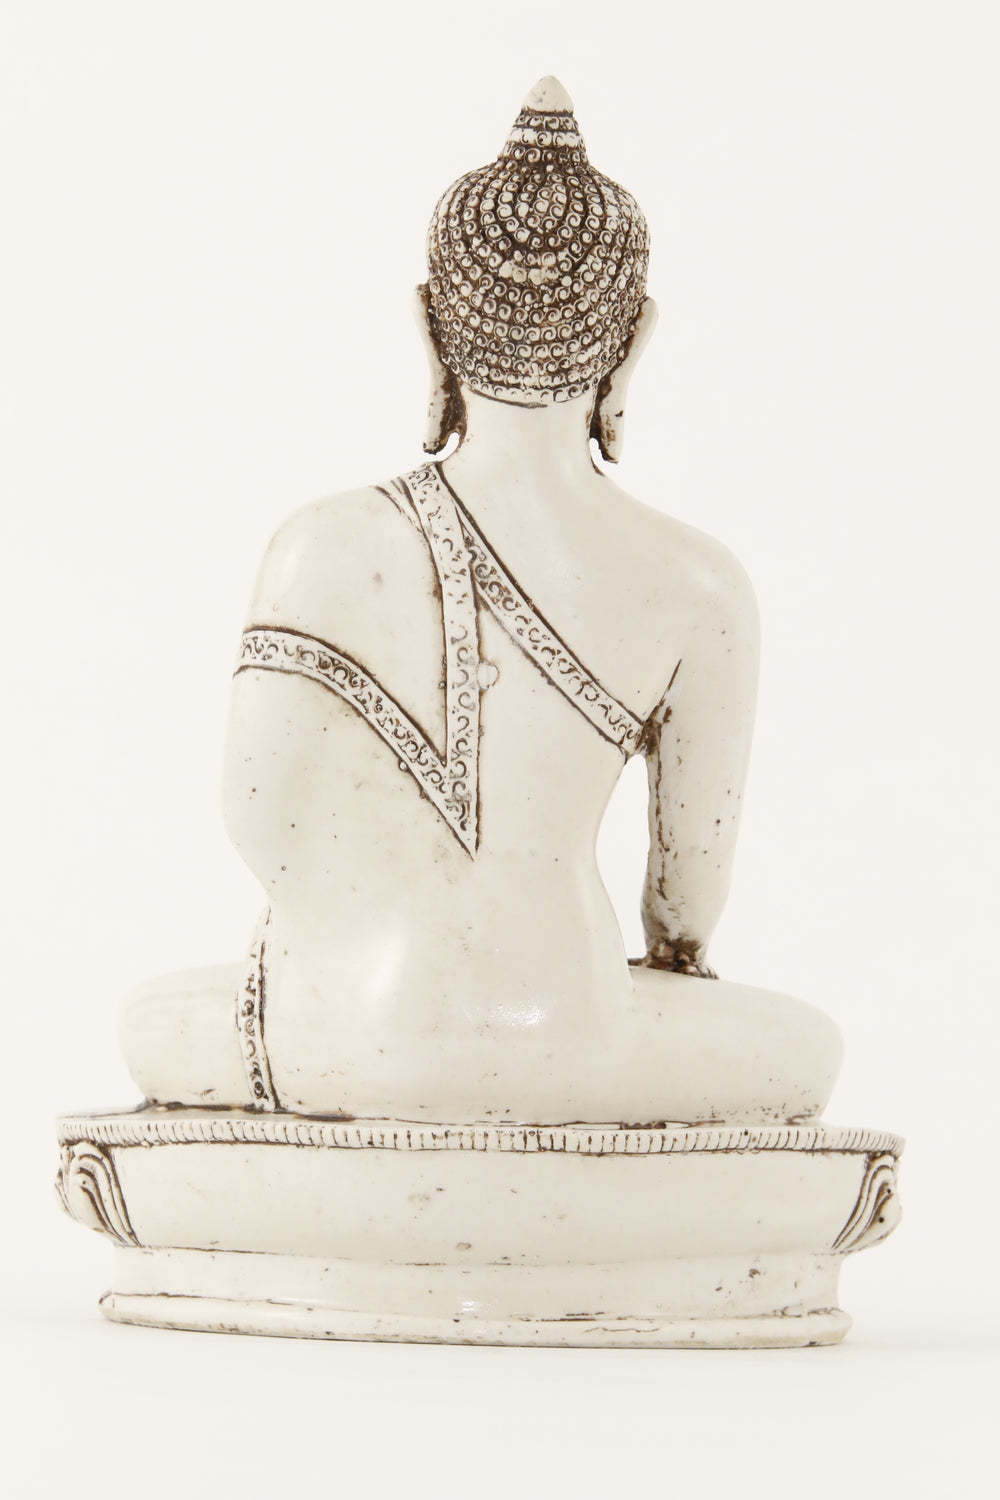 EARTH TOUCHING BUDDHA STATUE OFF-WHITE LARGE BACK VIEW